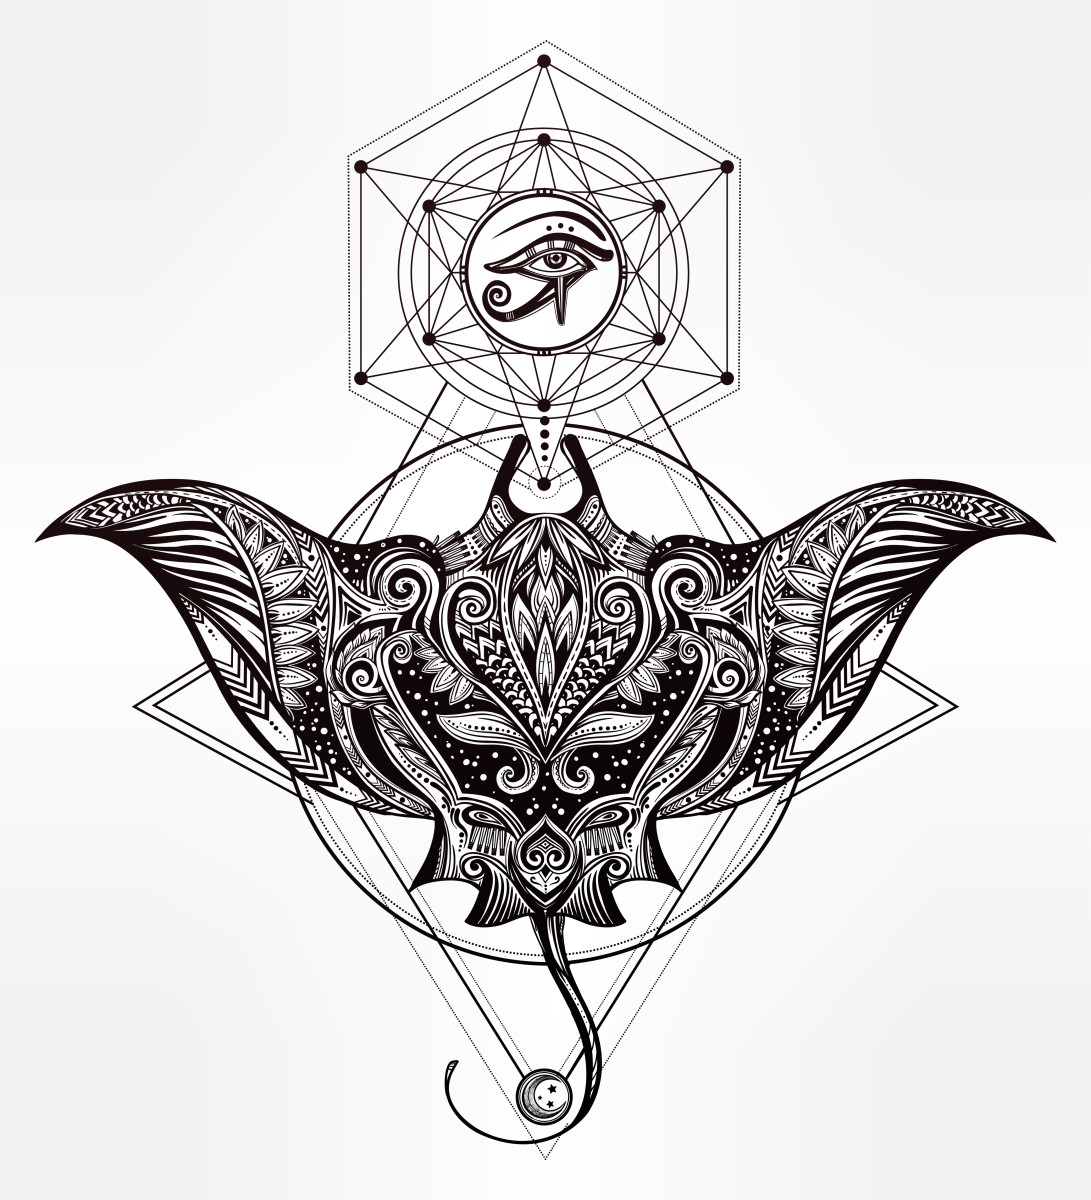 Stingray Tattoo Design Ideas